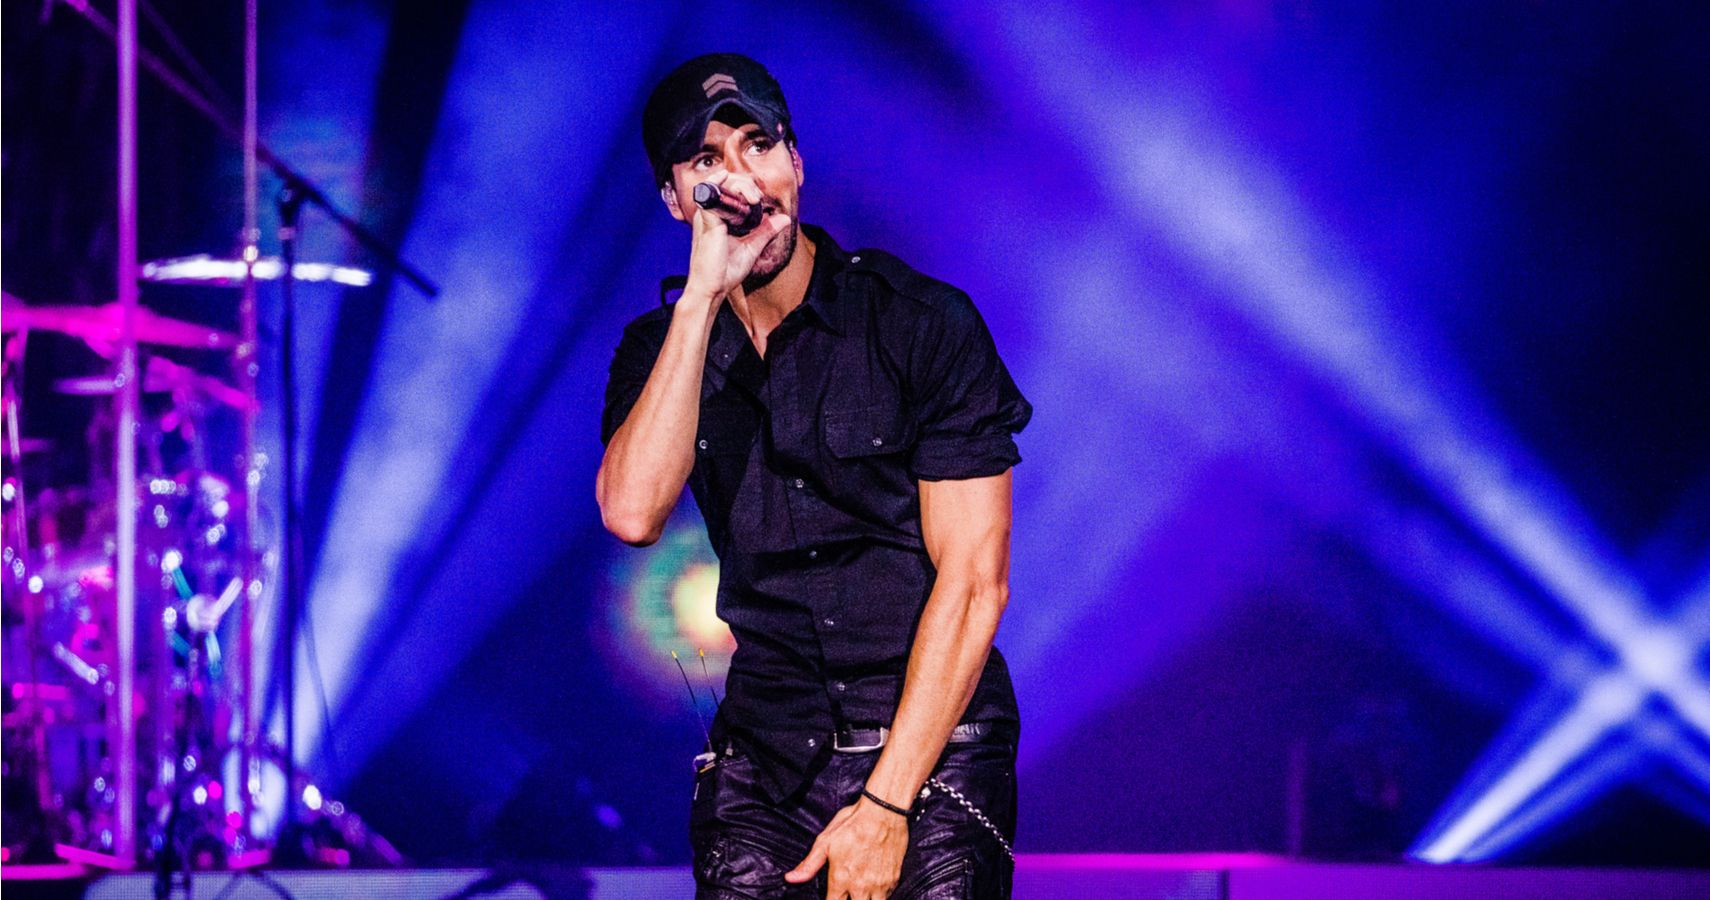 Enrique Iglesias Hints At Retirement From Music After Next Album